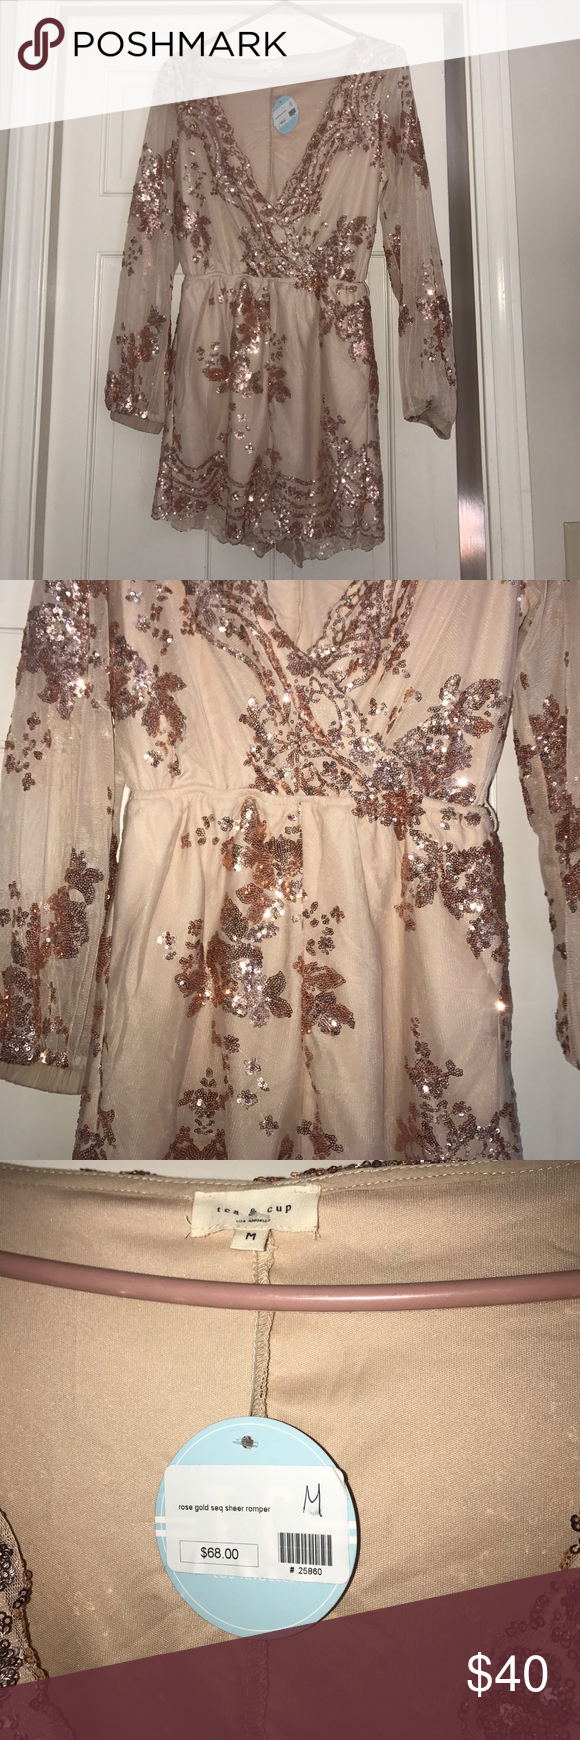 Rose gold sequin romper nwt sequins rose and gold